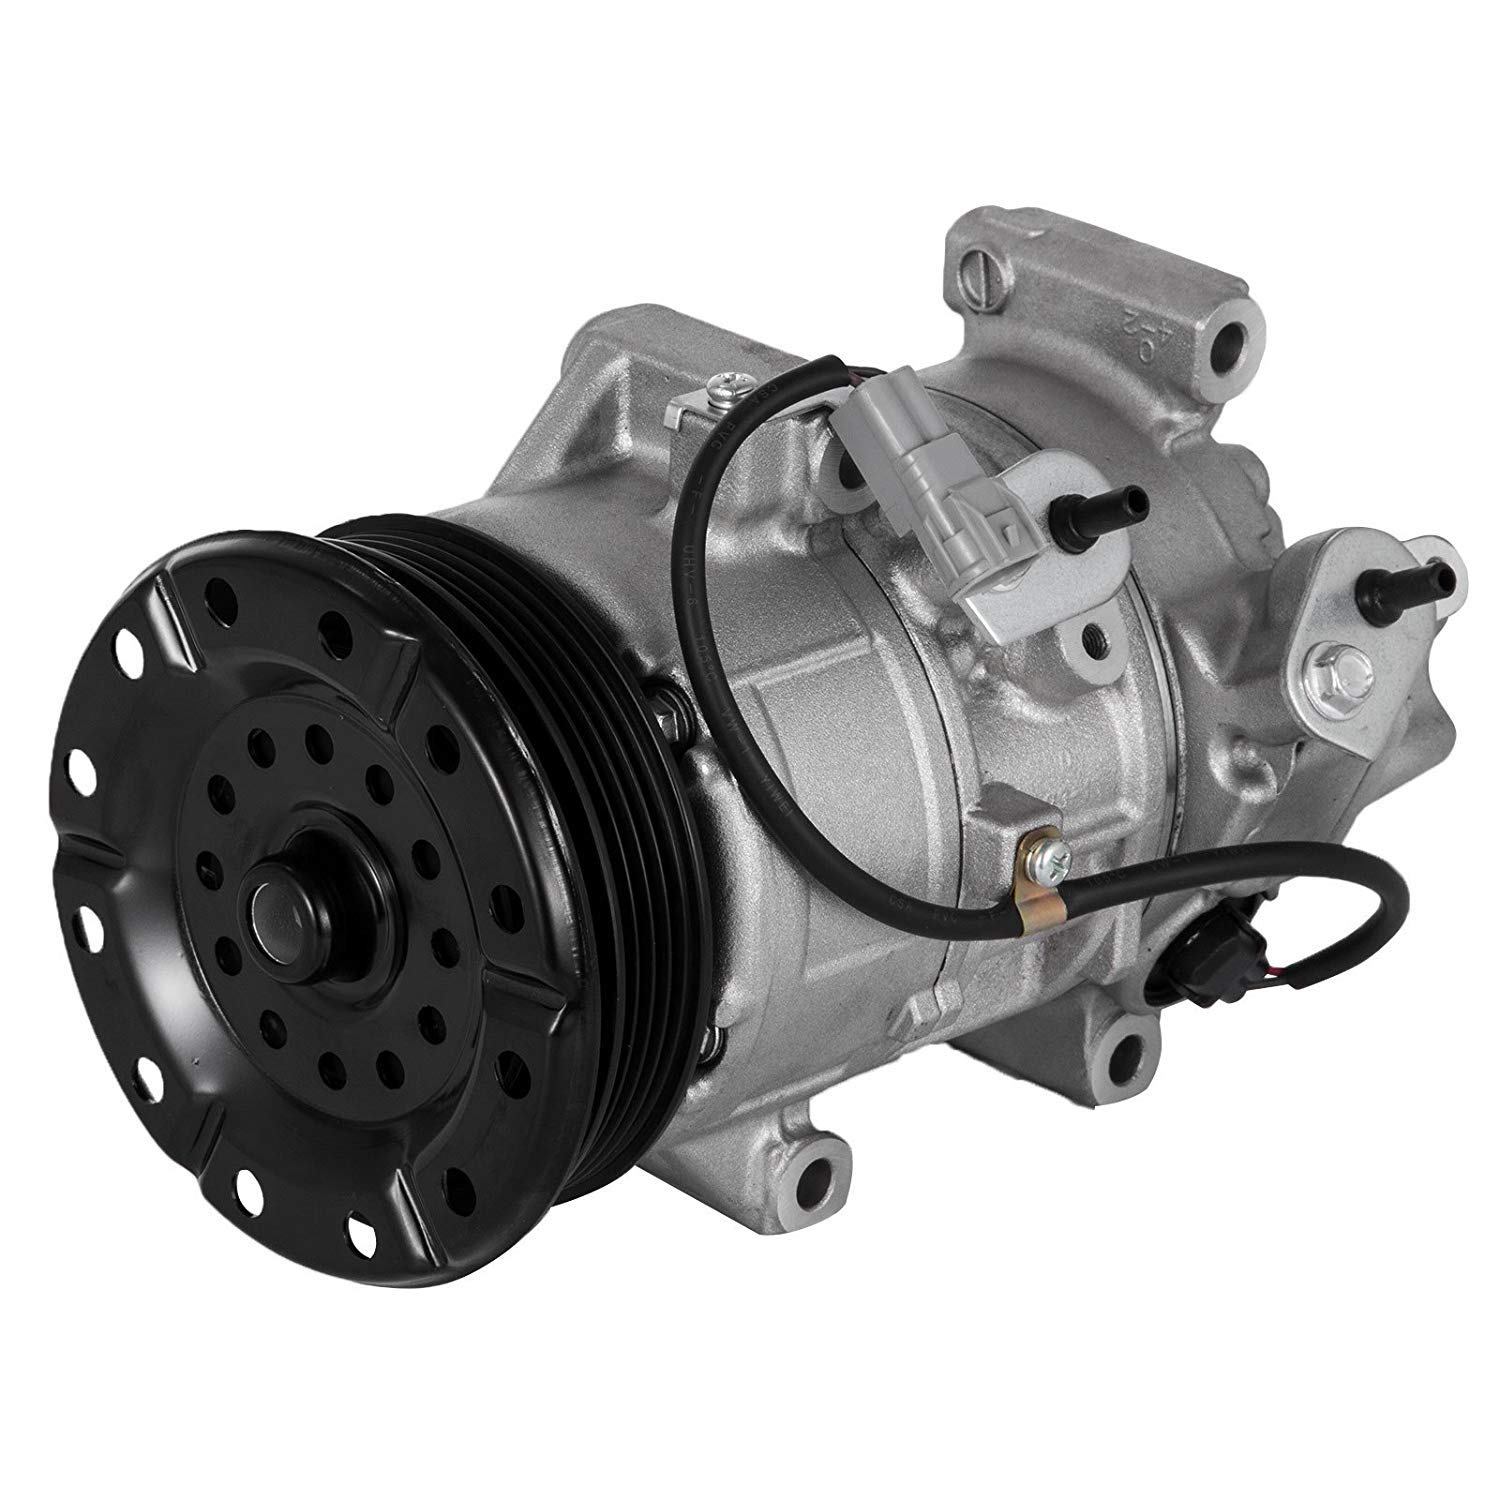 Happybuy CO 11078C Universal Air Conditioner AC Compressor For Toyota Yaris 1.5L 2007-2010 N157318 5SE11C A//C Compressor Assembly 8831052481